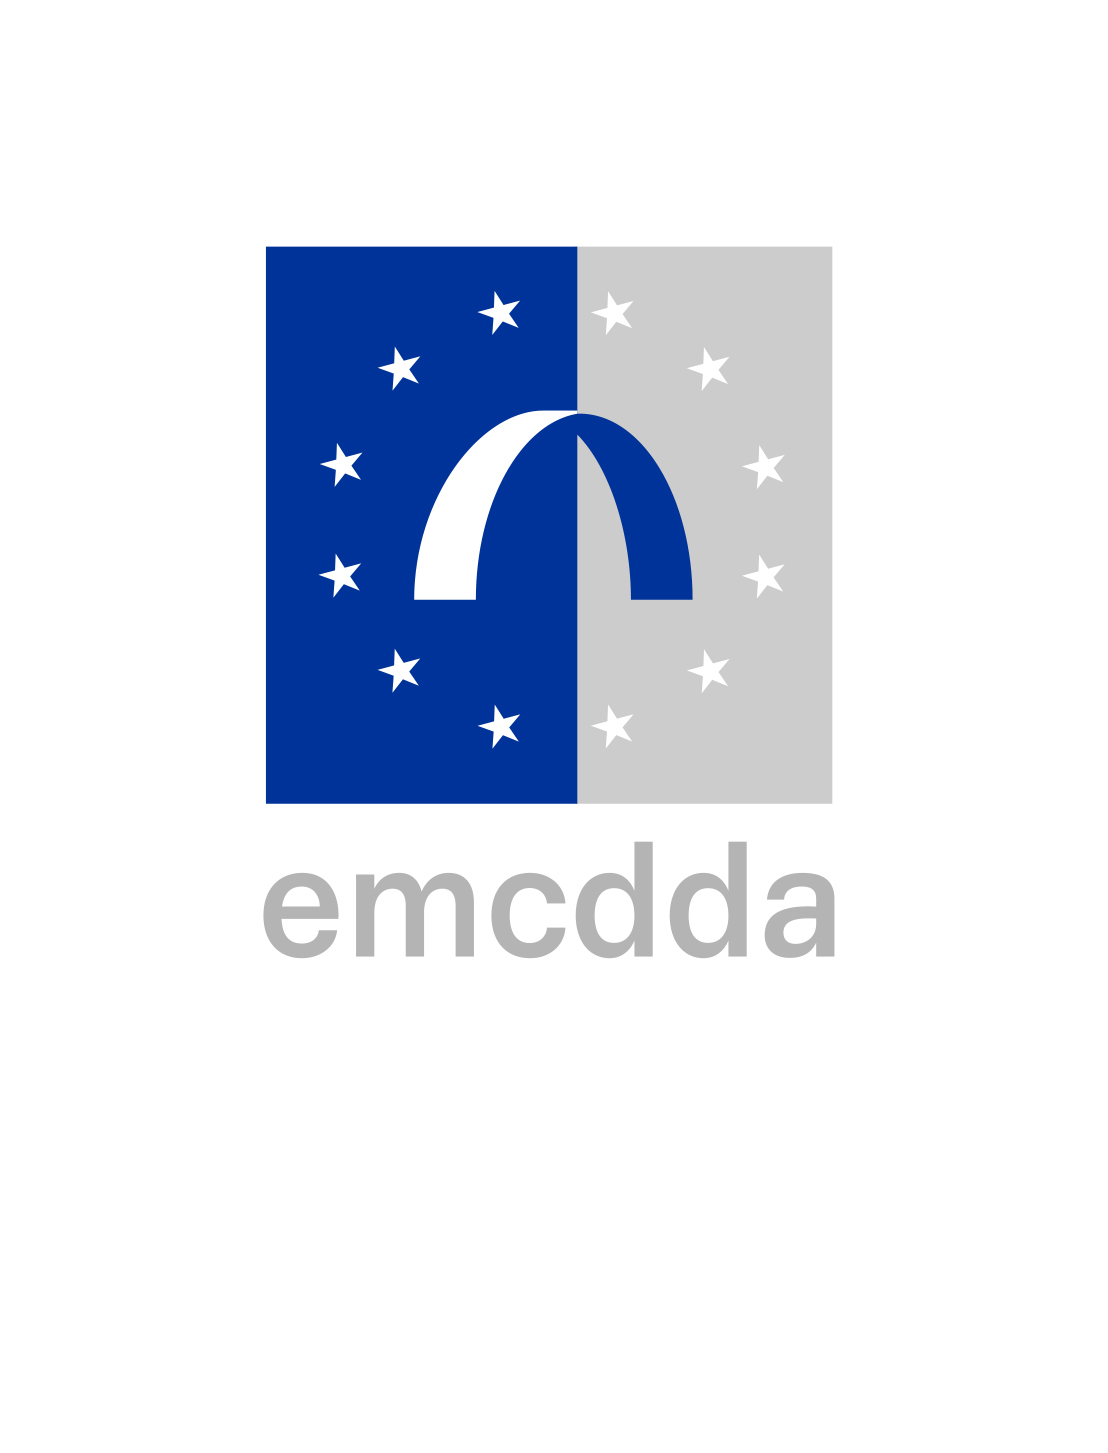 logo for European Monitoring Centre for Drugs and Drug Addiction